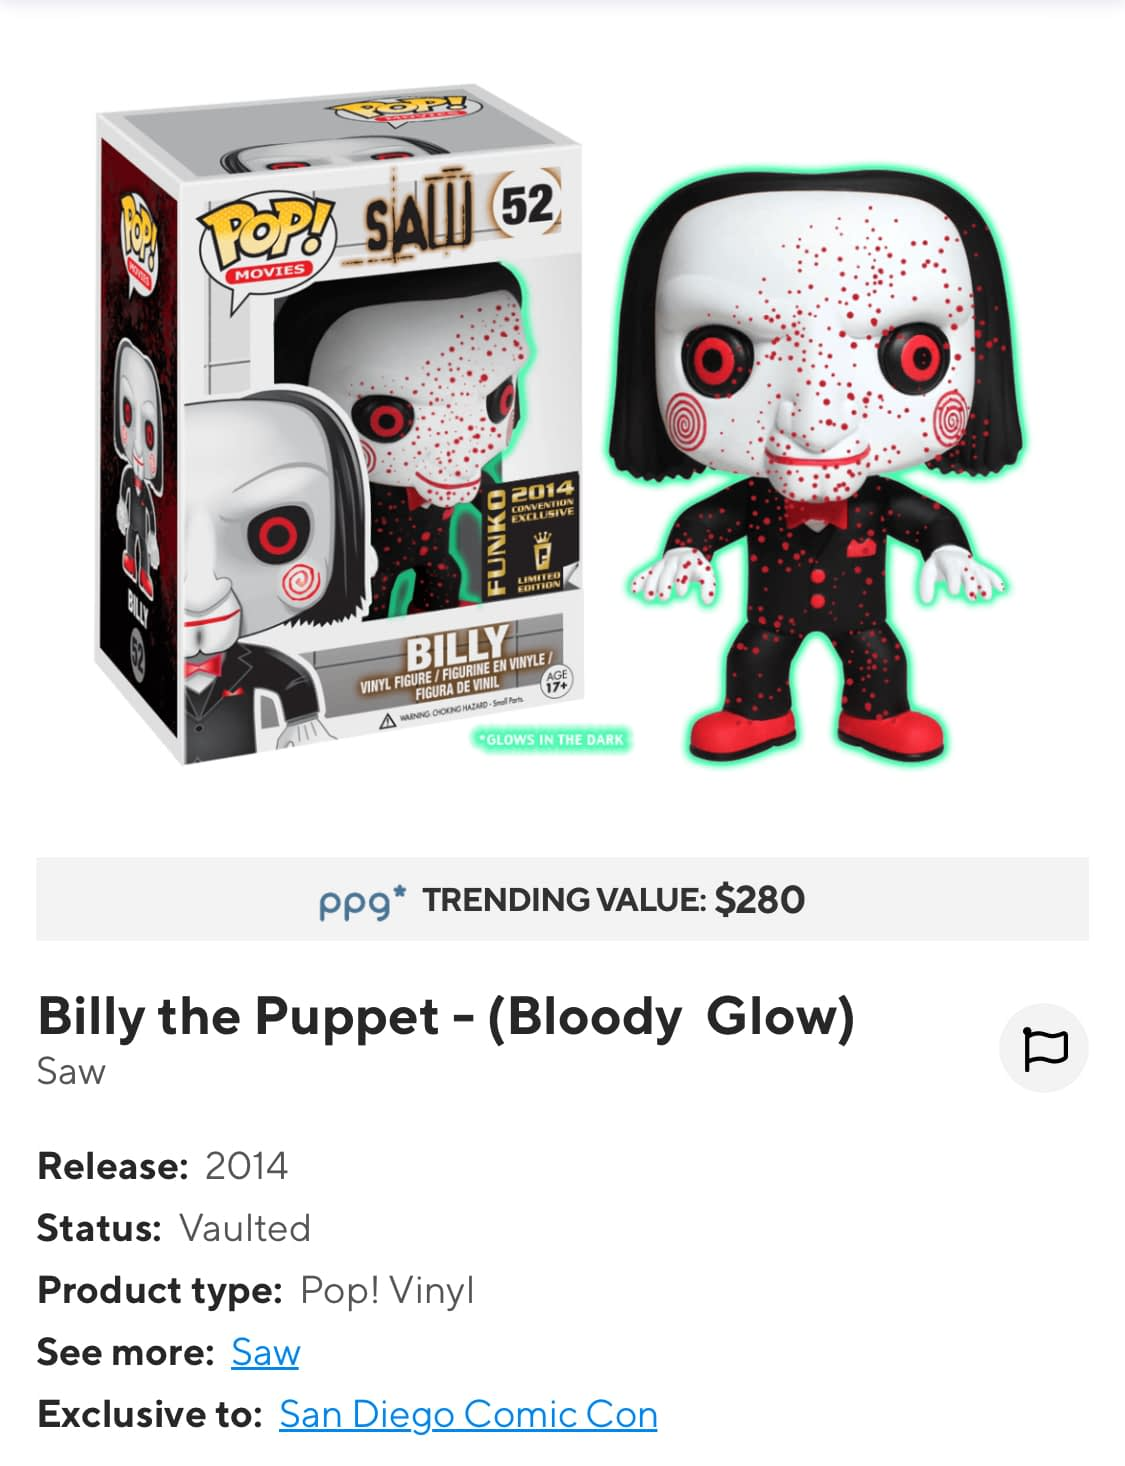 Counterfeit Funko Pops Bringing the Fall of Once Funko Grails